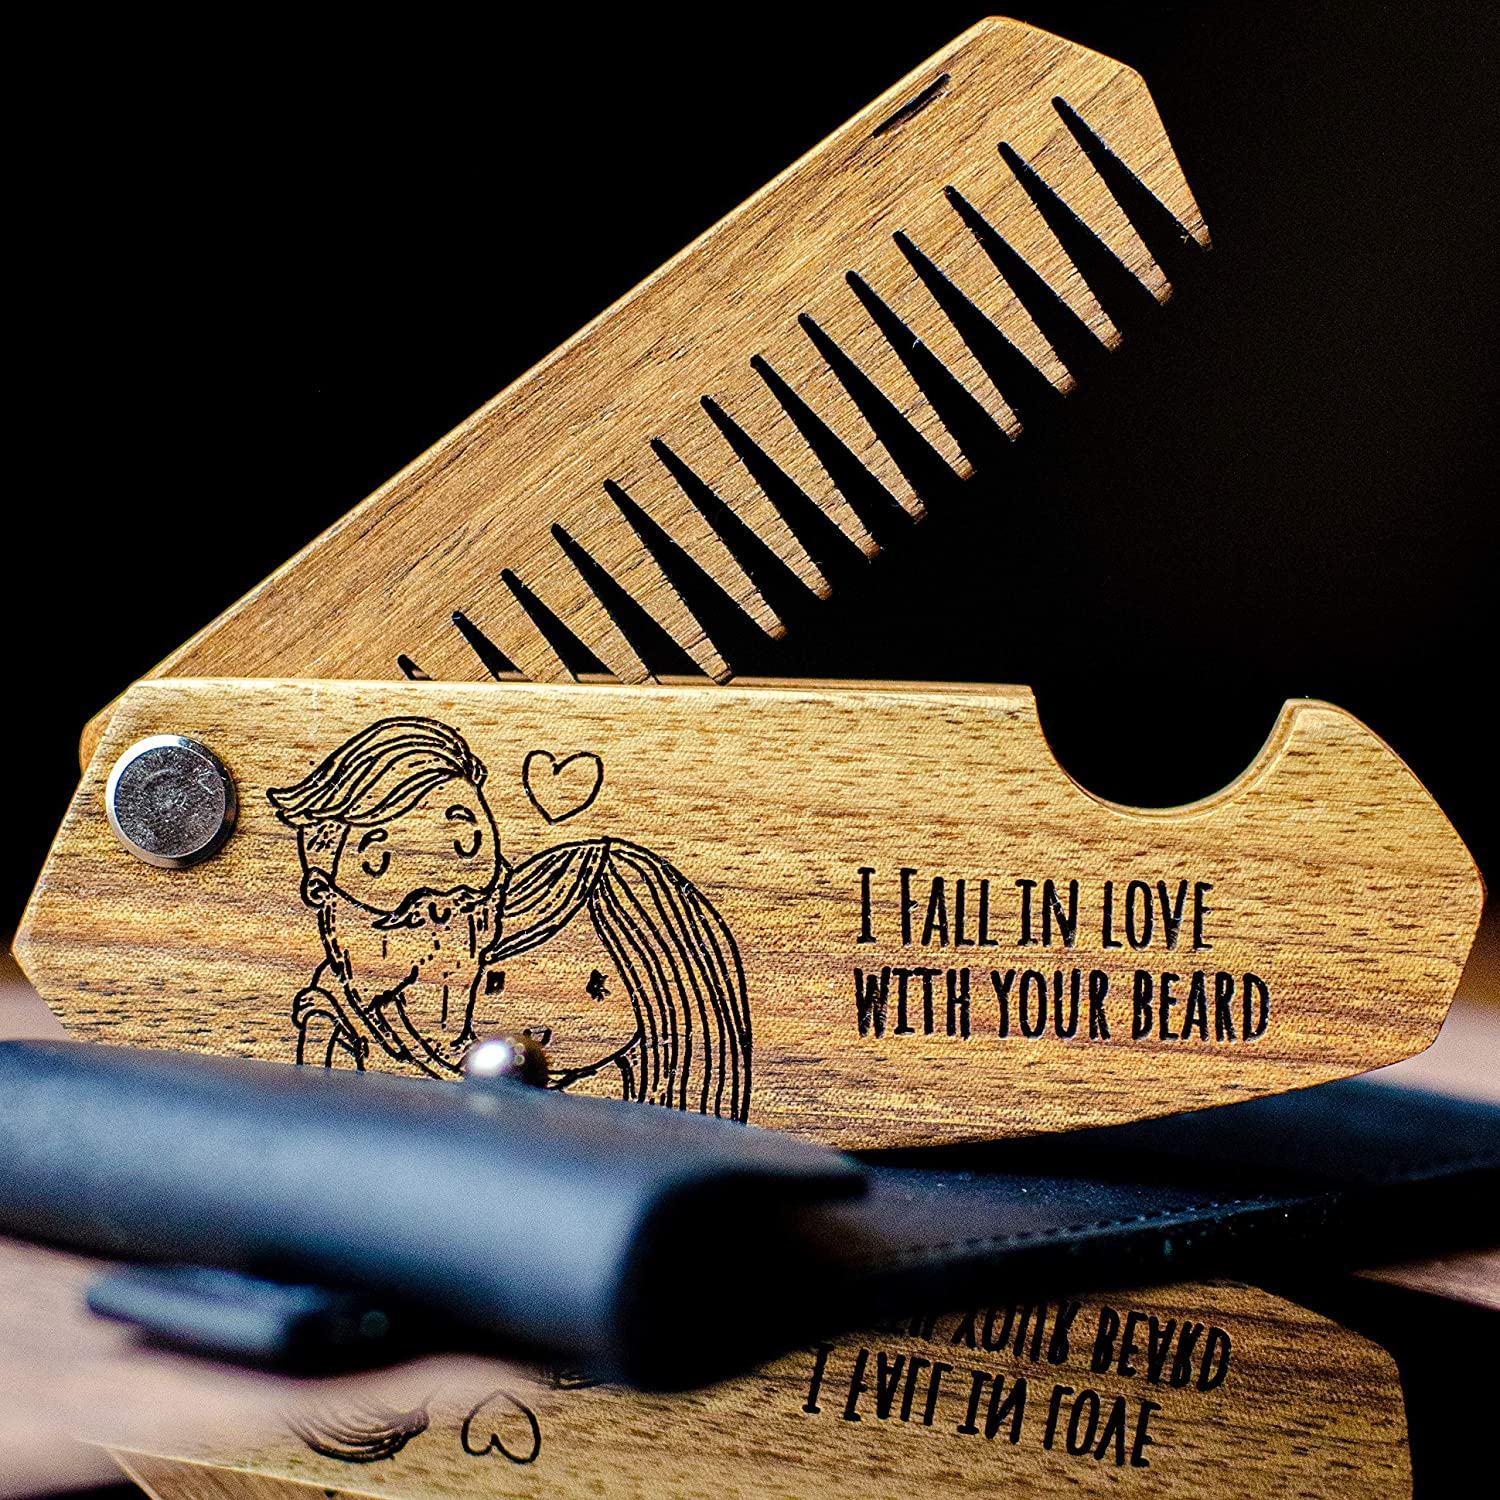 Wooden Beard Comb for Men Personalized Folding Pocket Comb for Moustache Beard & Hair Walnut Combs with Engraving